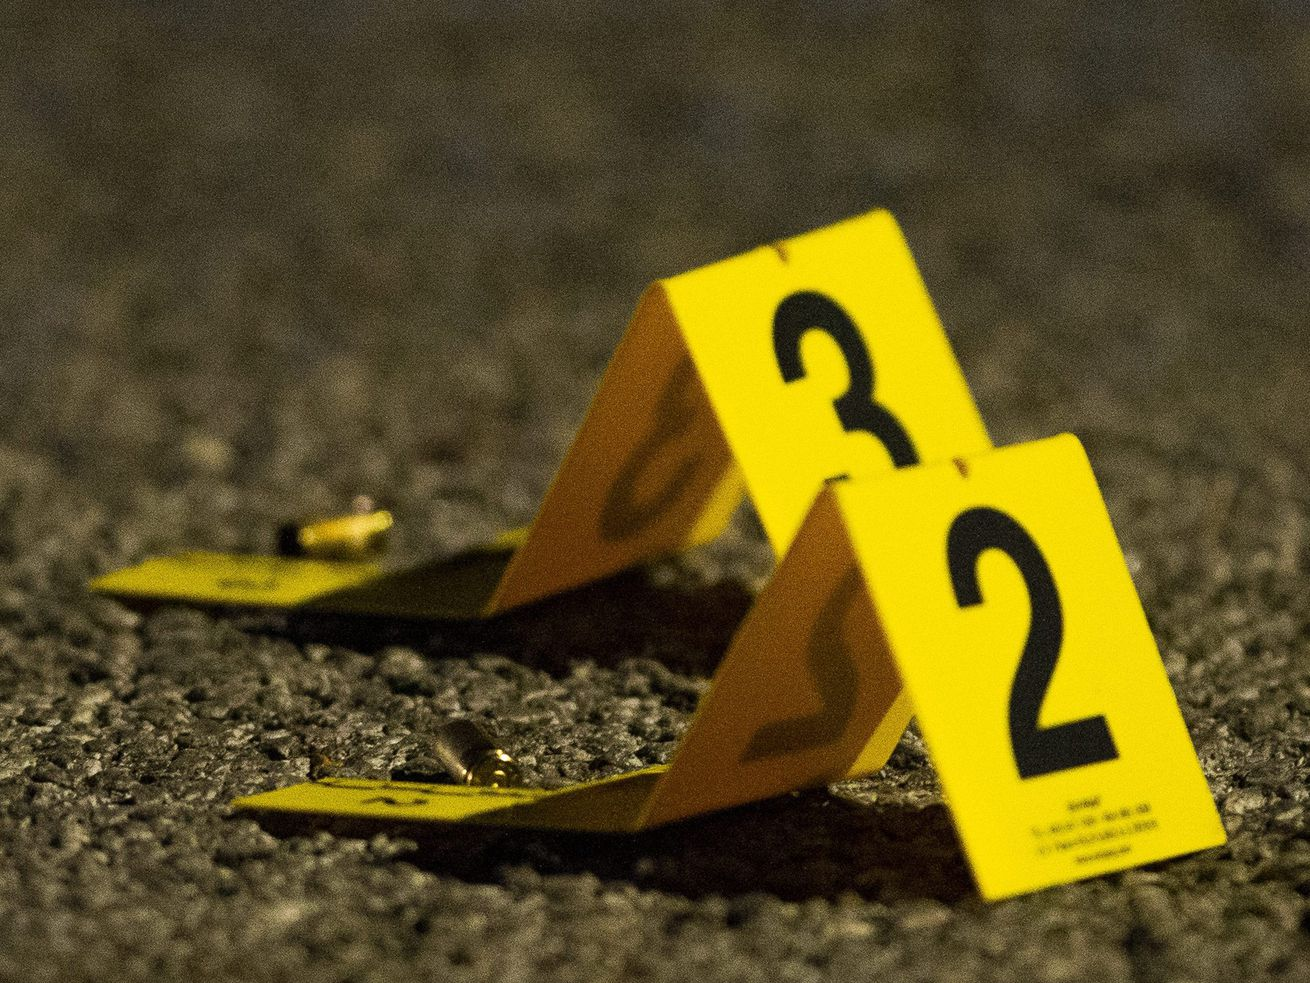 A 32-year-old man was shot and killed Oct. 23, 2019 in Gary Indiana.